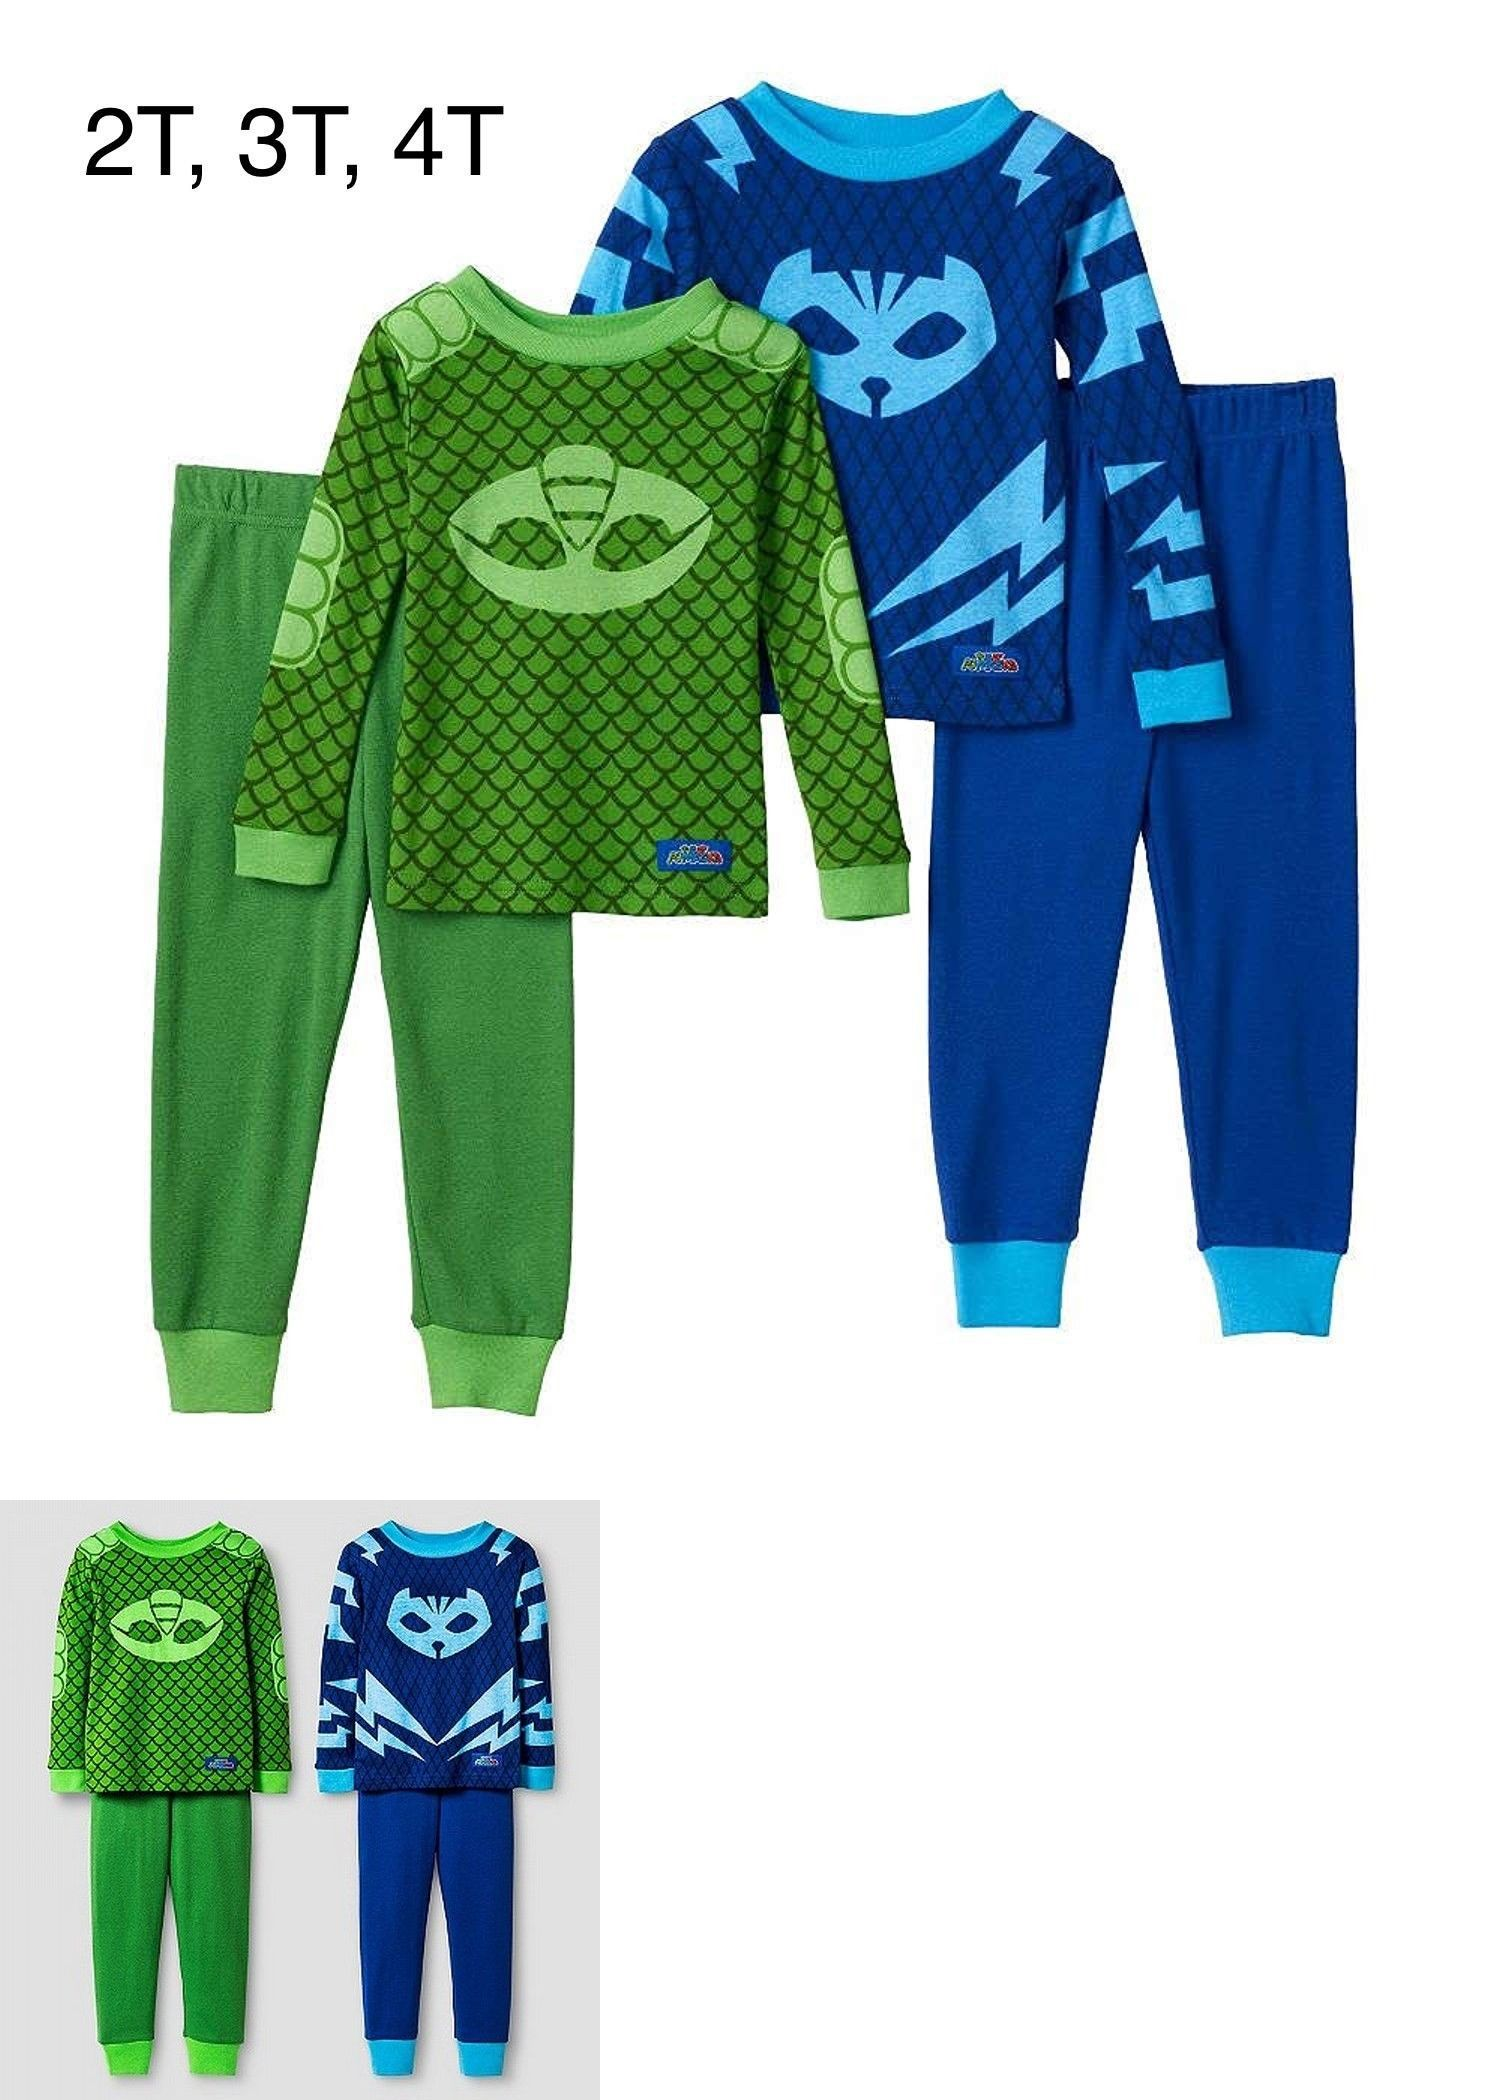 f2d41748a6 Sleepwear 147336  Pj Masks Pajama Set  Toddler Boys Gekko And Catboy 4 Pc  Set Green And Blue -  BUY IT NOW ONLY   31.99 on  eBay  sleepwear  masks   pajama ...